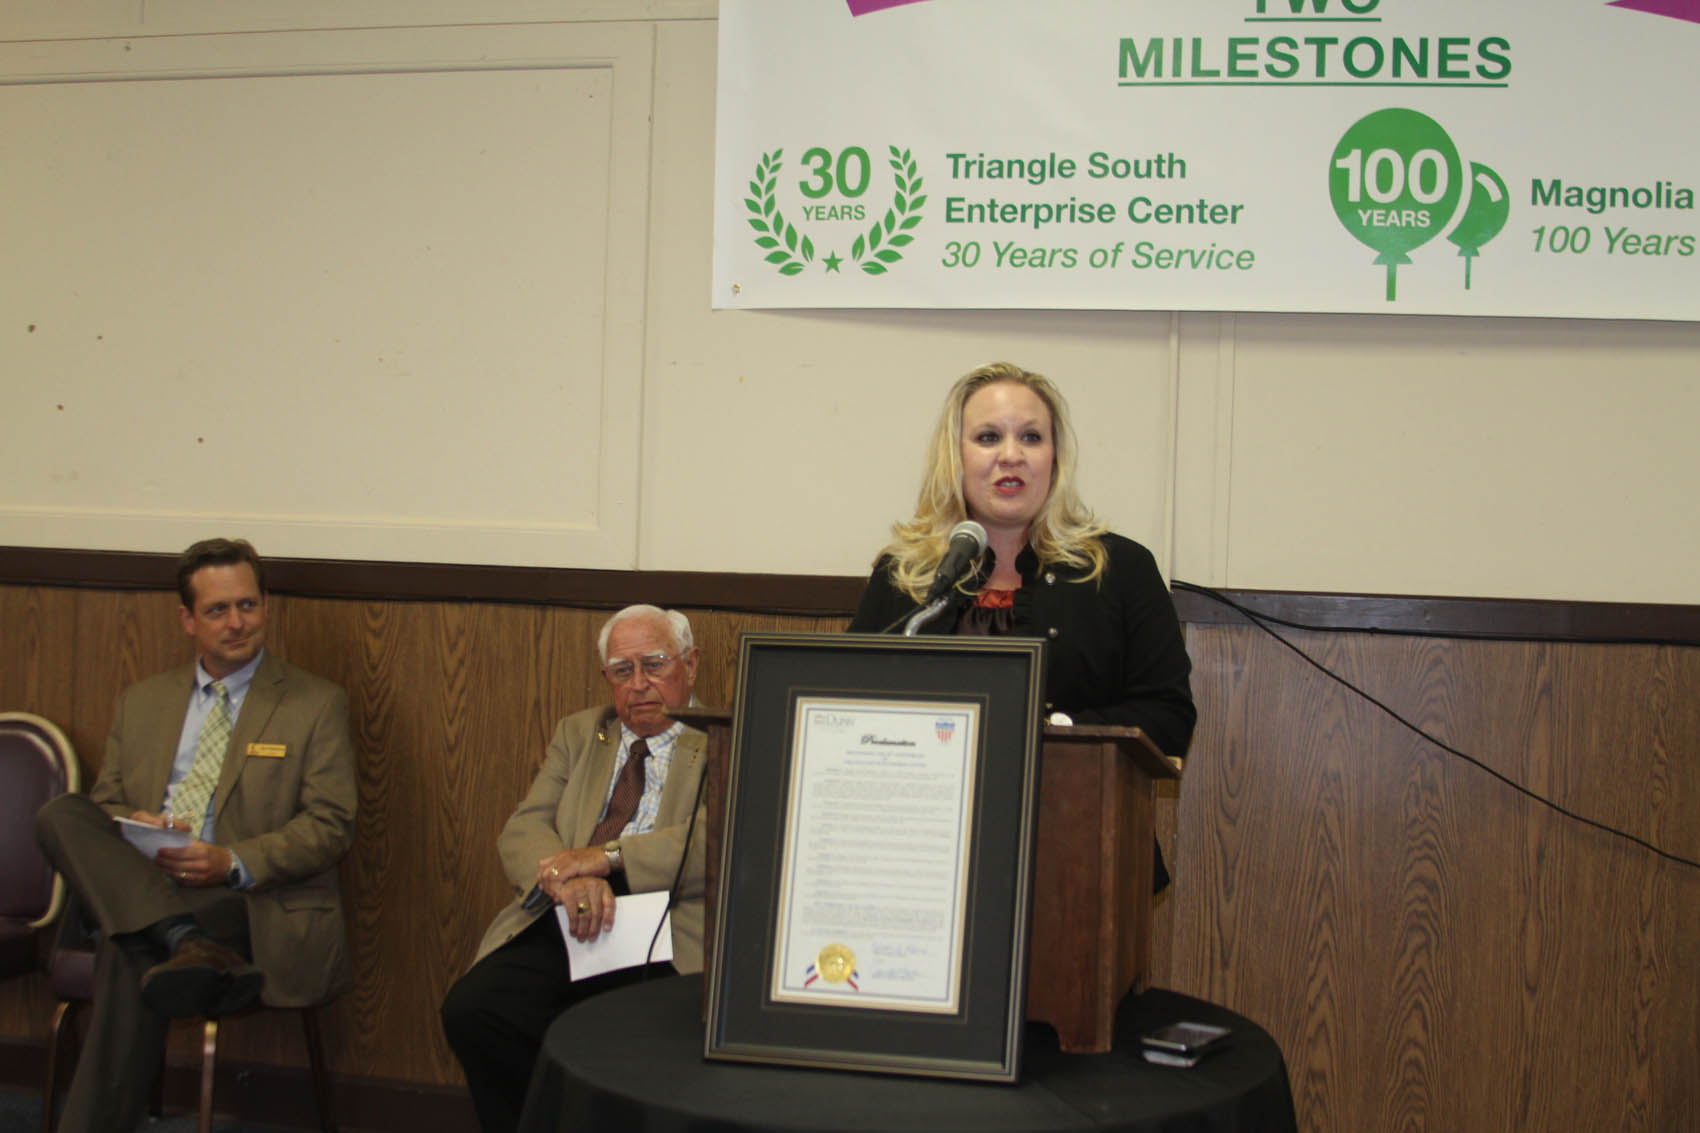 Read the full story, Triangle South celebrates two milestones